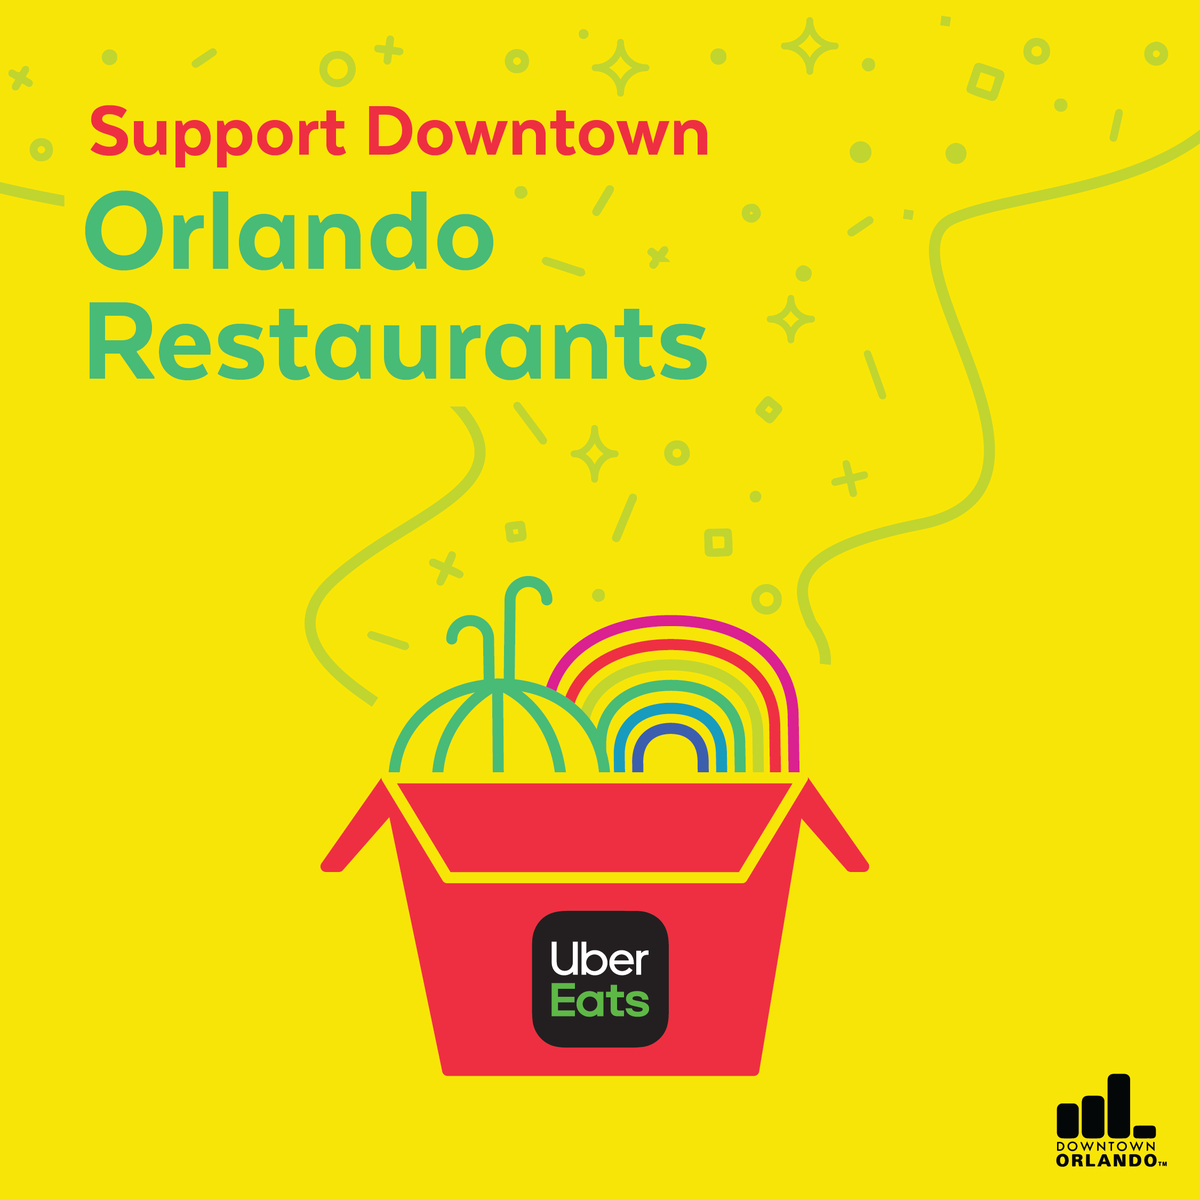 Today is the last day to get FREE delivery from some of your favorite downtown restaurants!   Place an order ➡️ https://t.co/ETBgnPLz5j https://t.co/DsTNAPsoge